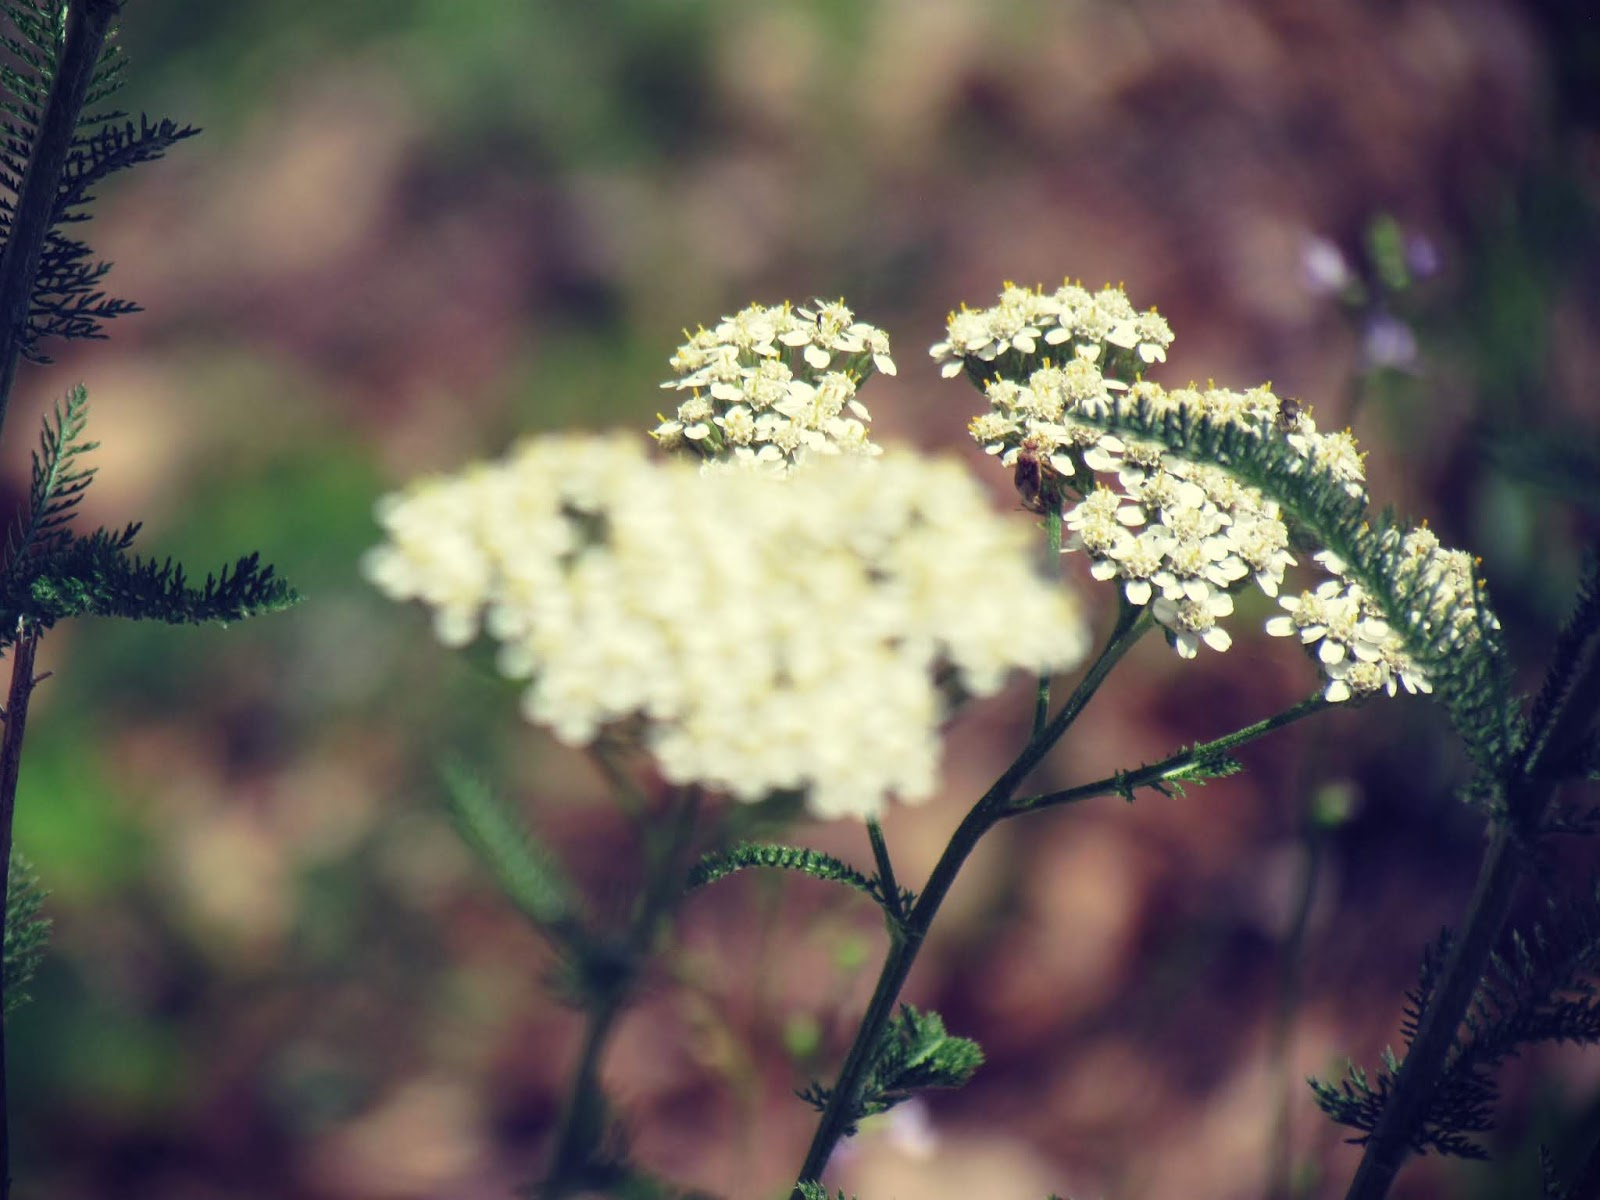 A magical yarrow plant root, herbs, and seedlings in the pines of New England